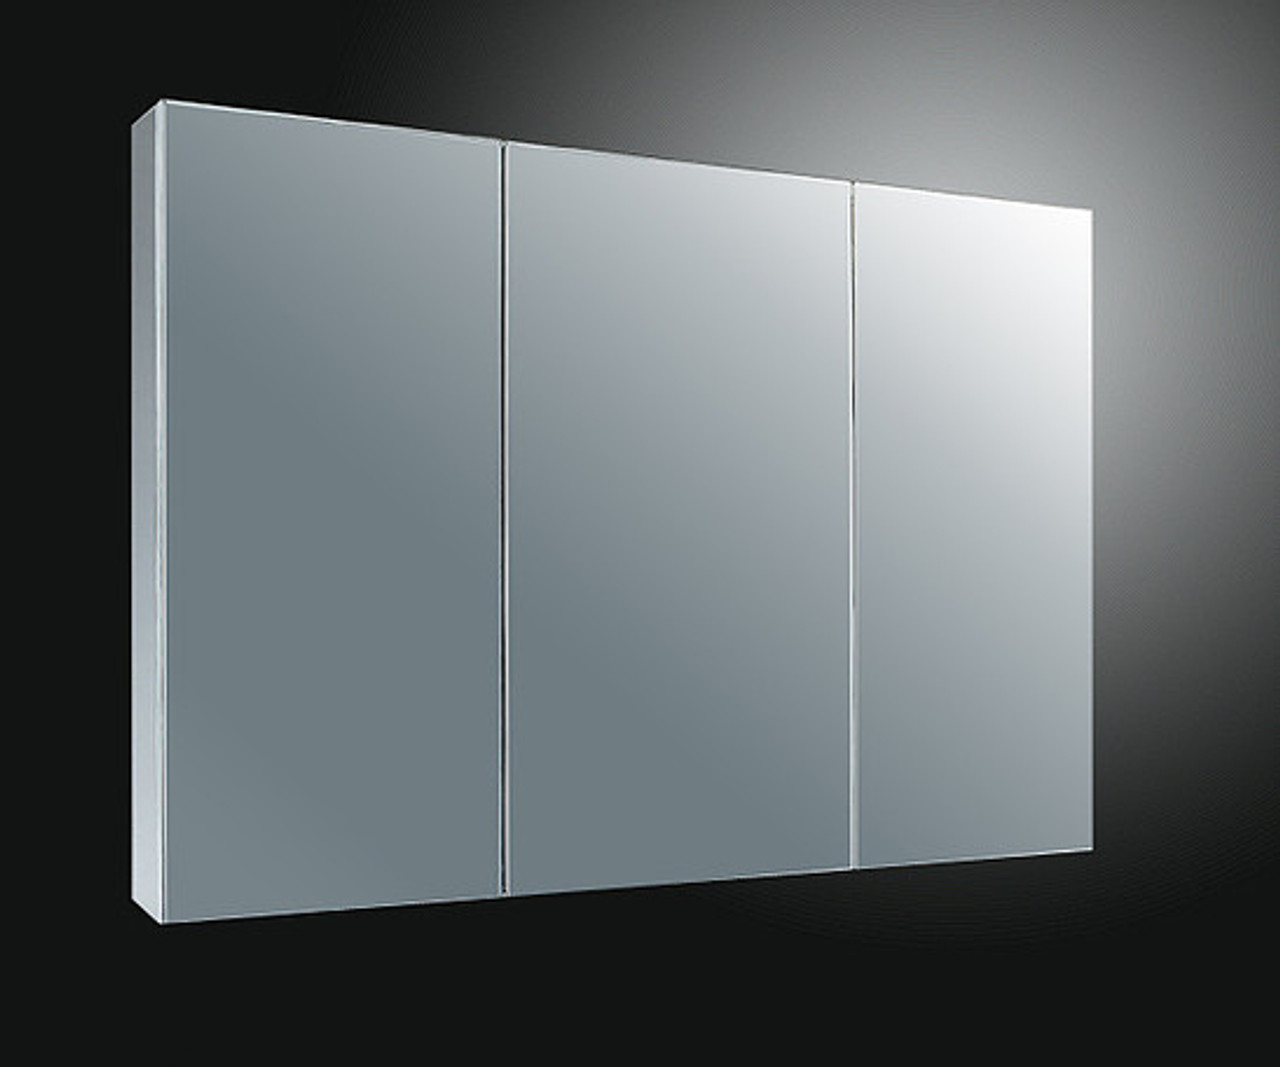 Ketcham Tri-View Medicine Cabinets Stainless Steel Series - Tri-View